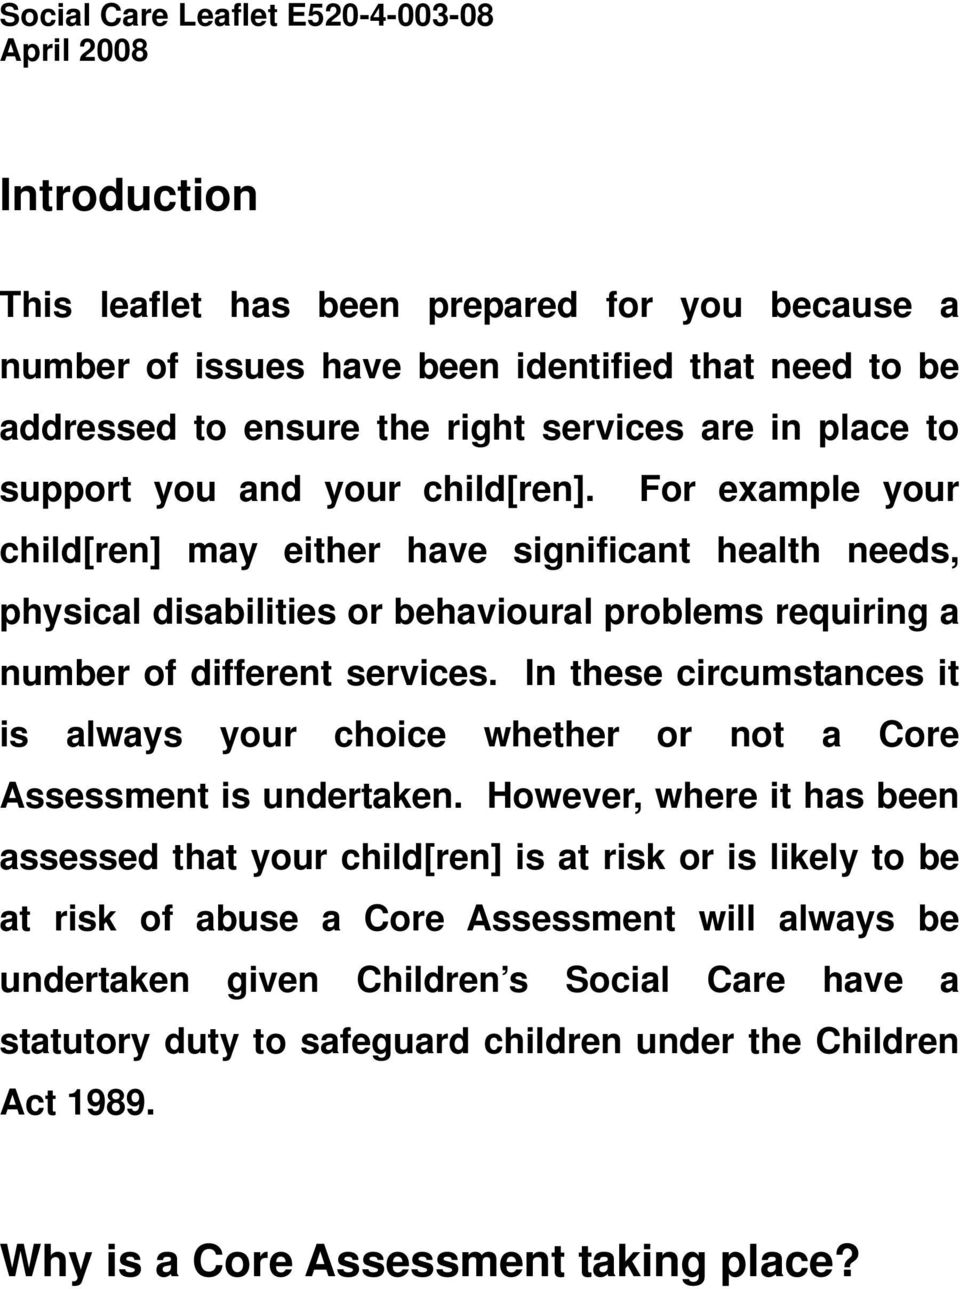 For example your child[ren] may either have significant health needs, physical disabilities or behavioural problems requiring a number of different services.